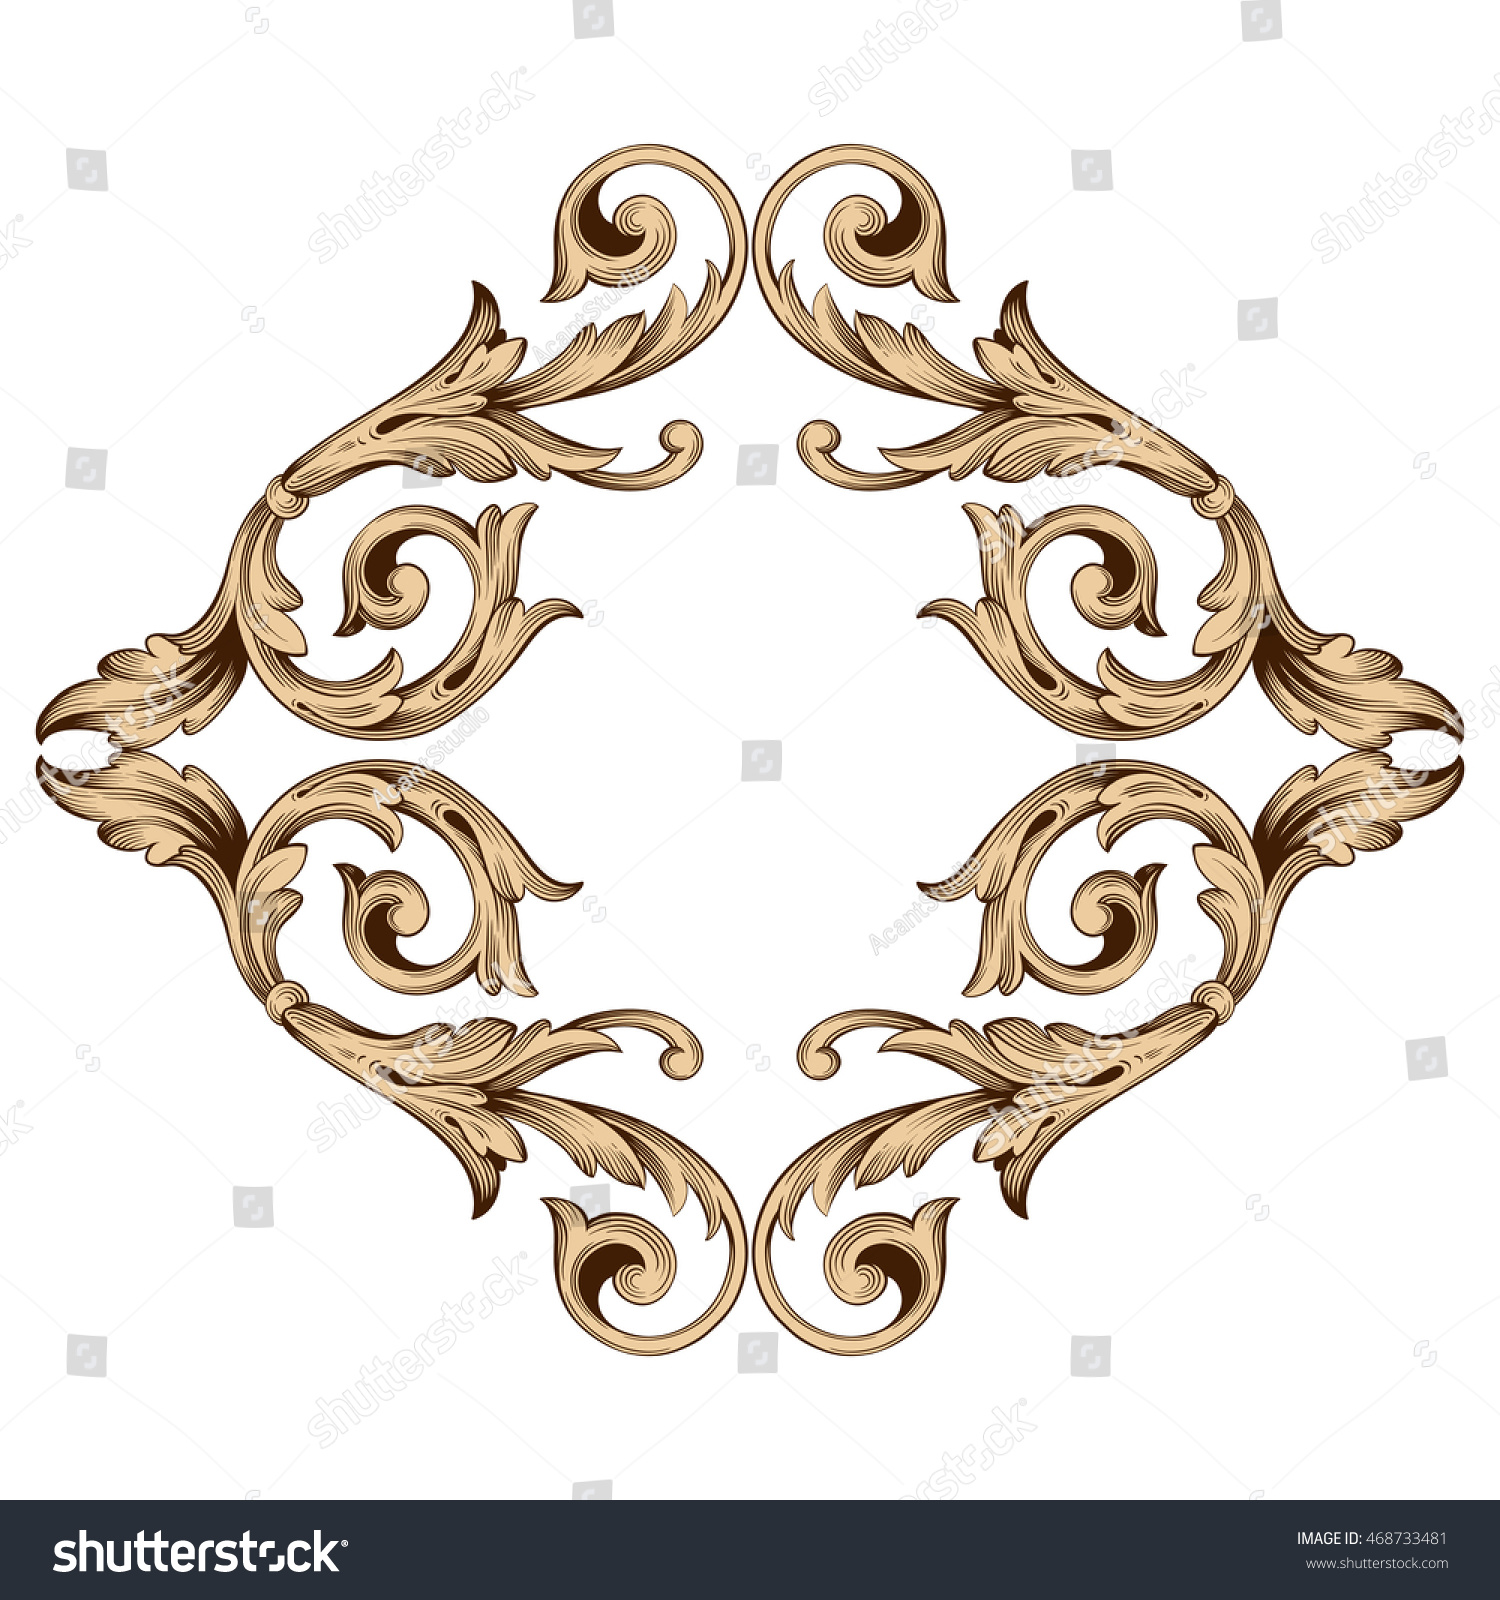 Vintage element engraving retro ornament pattern stock for Baroque architecture elements